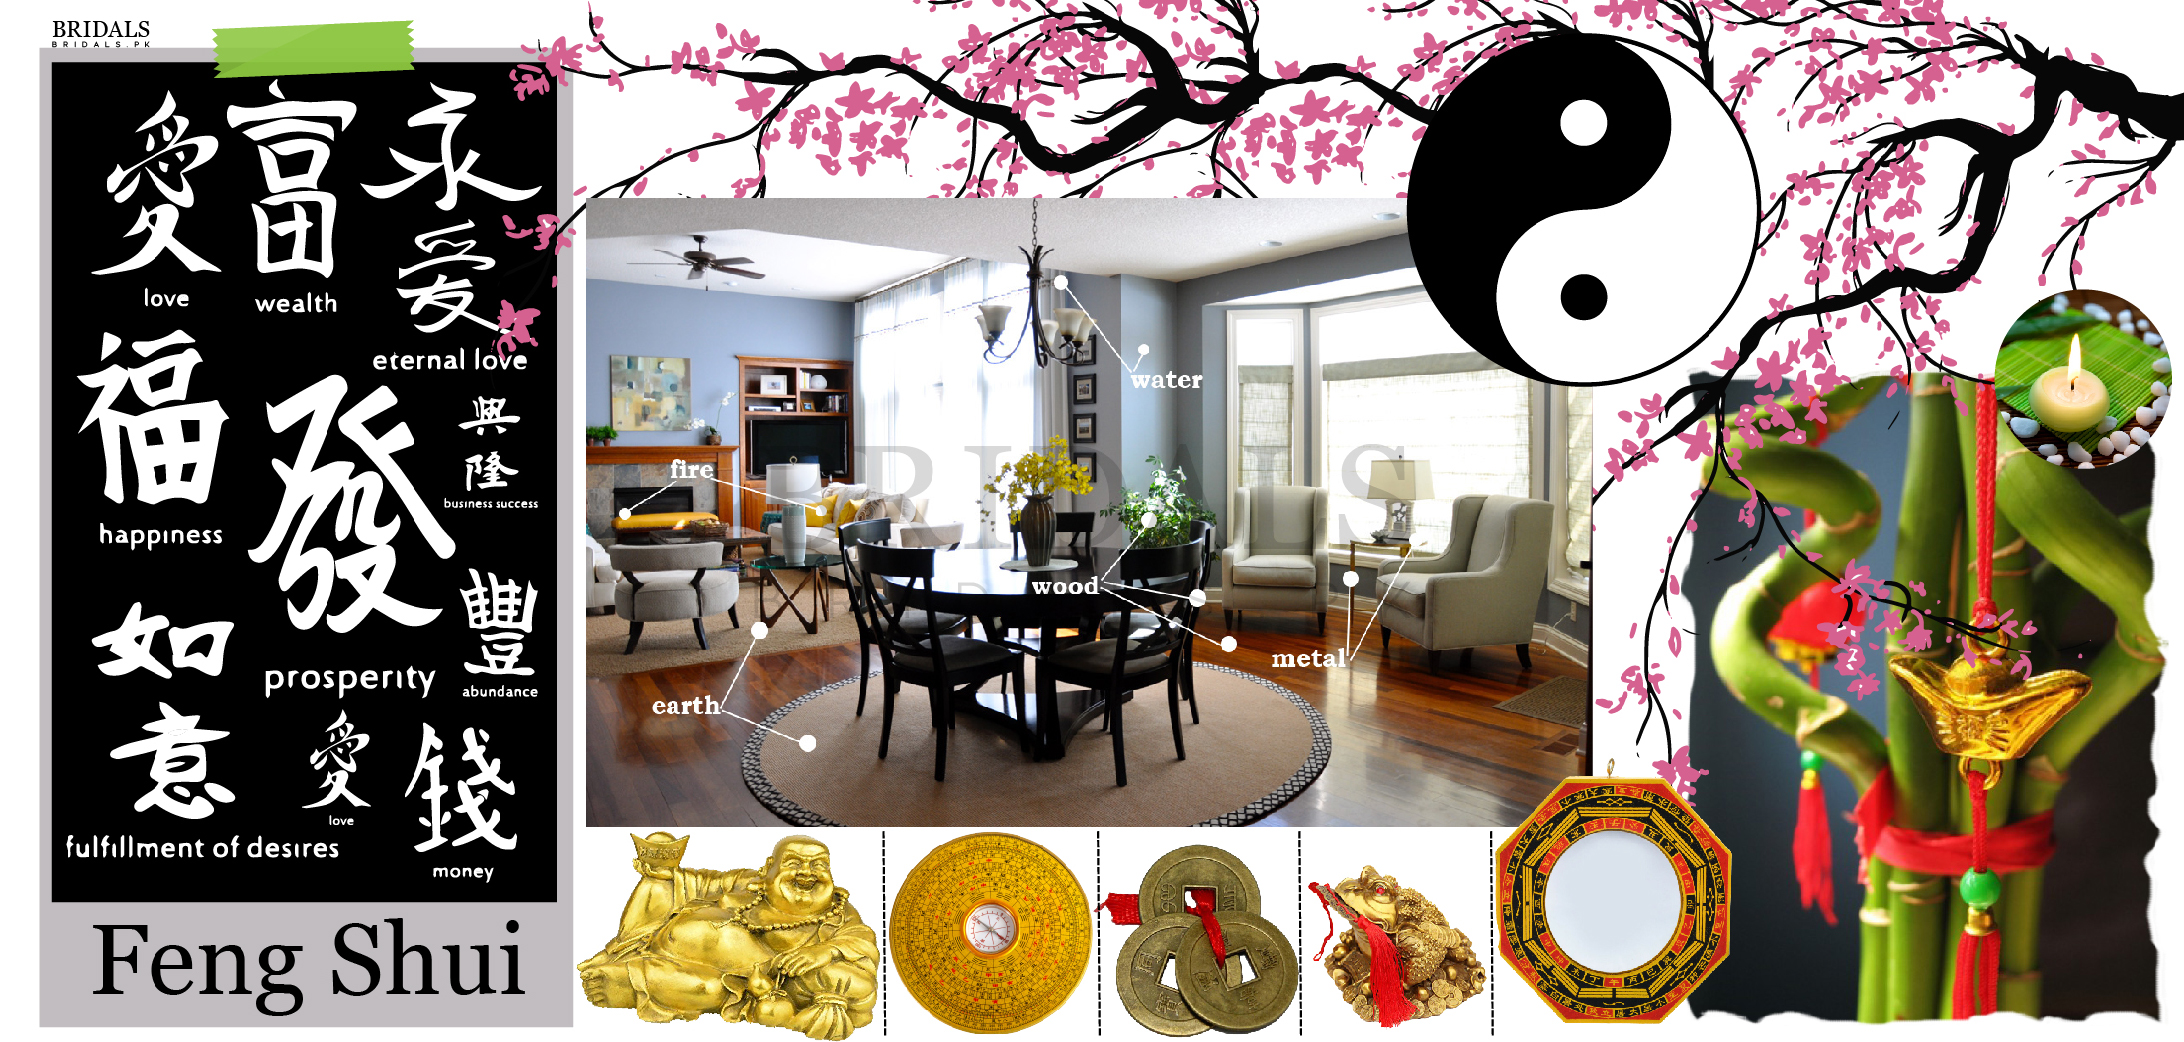 Feng Shui Couples: How To Introduce Feng Shui Into Your Home After Marriage